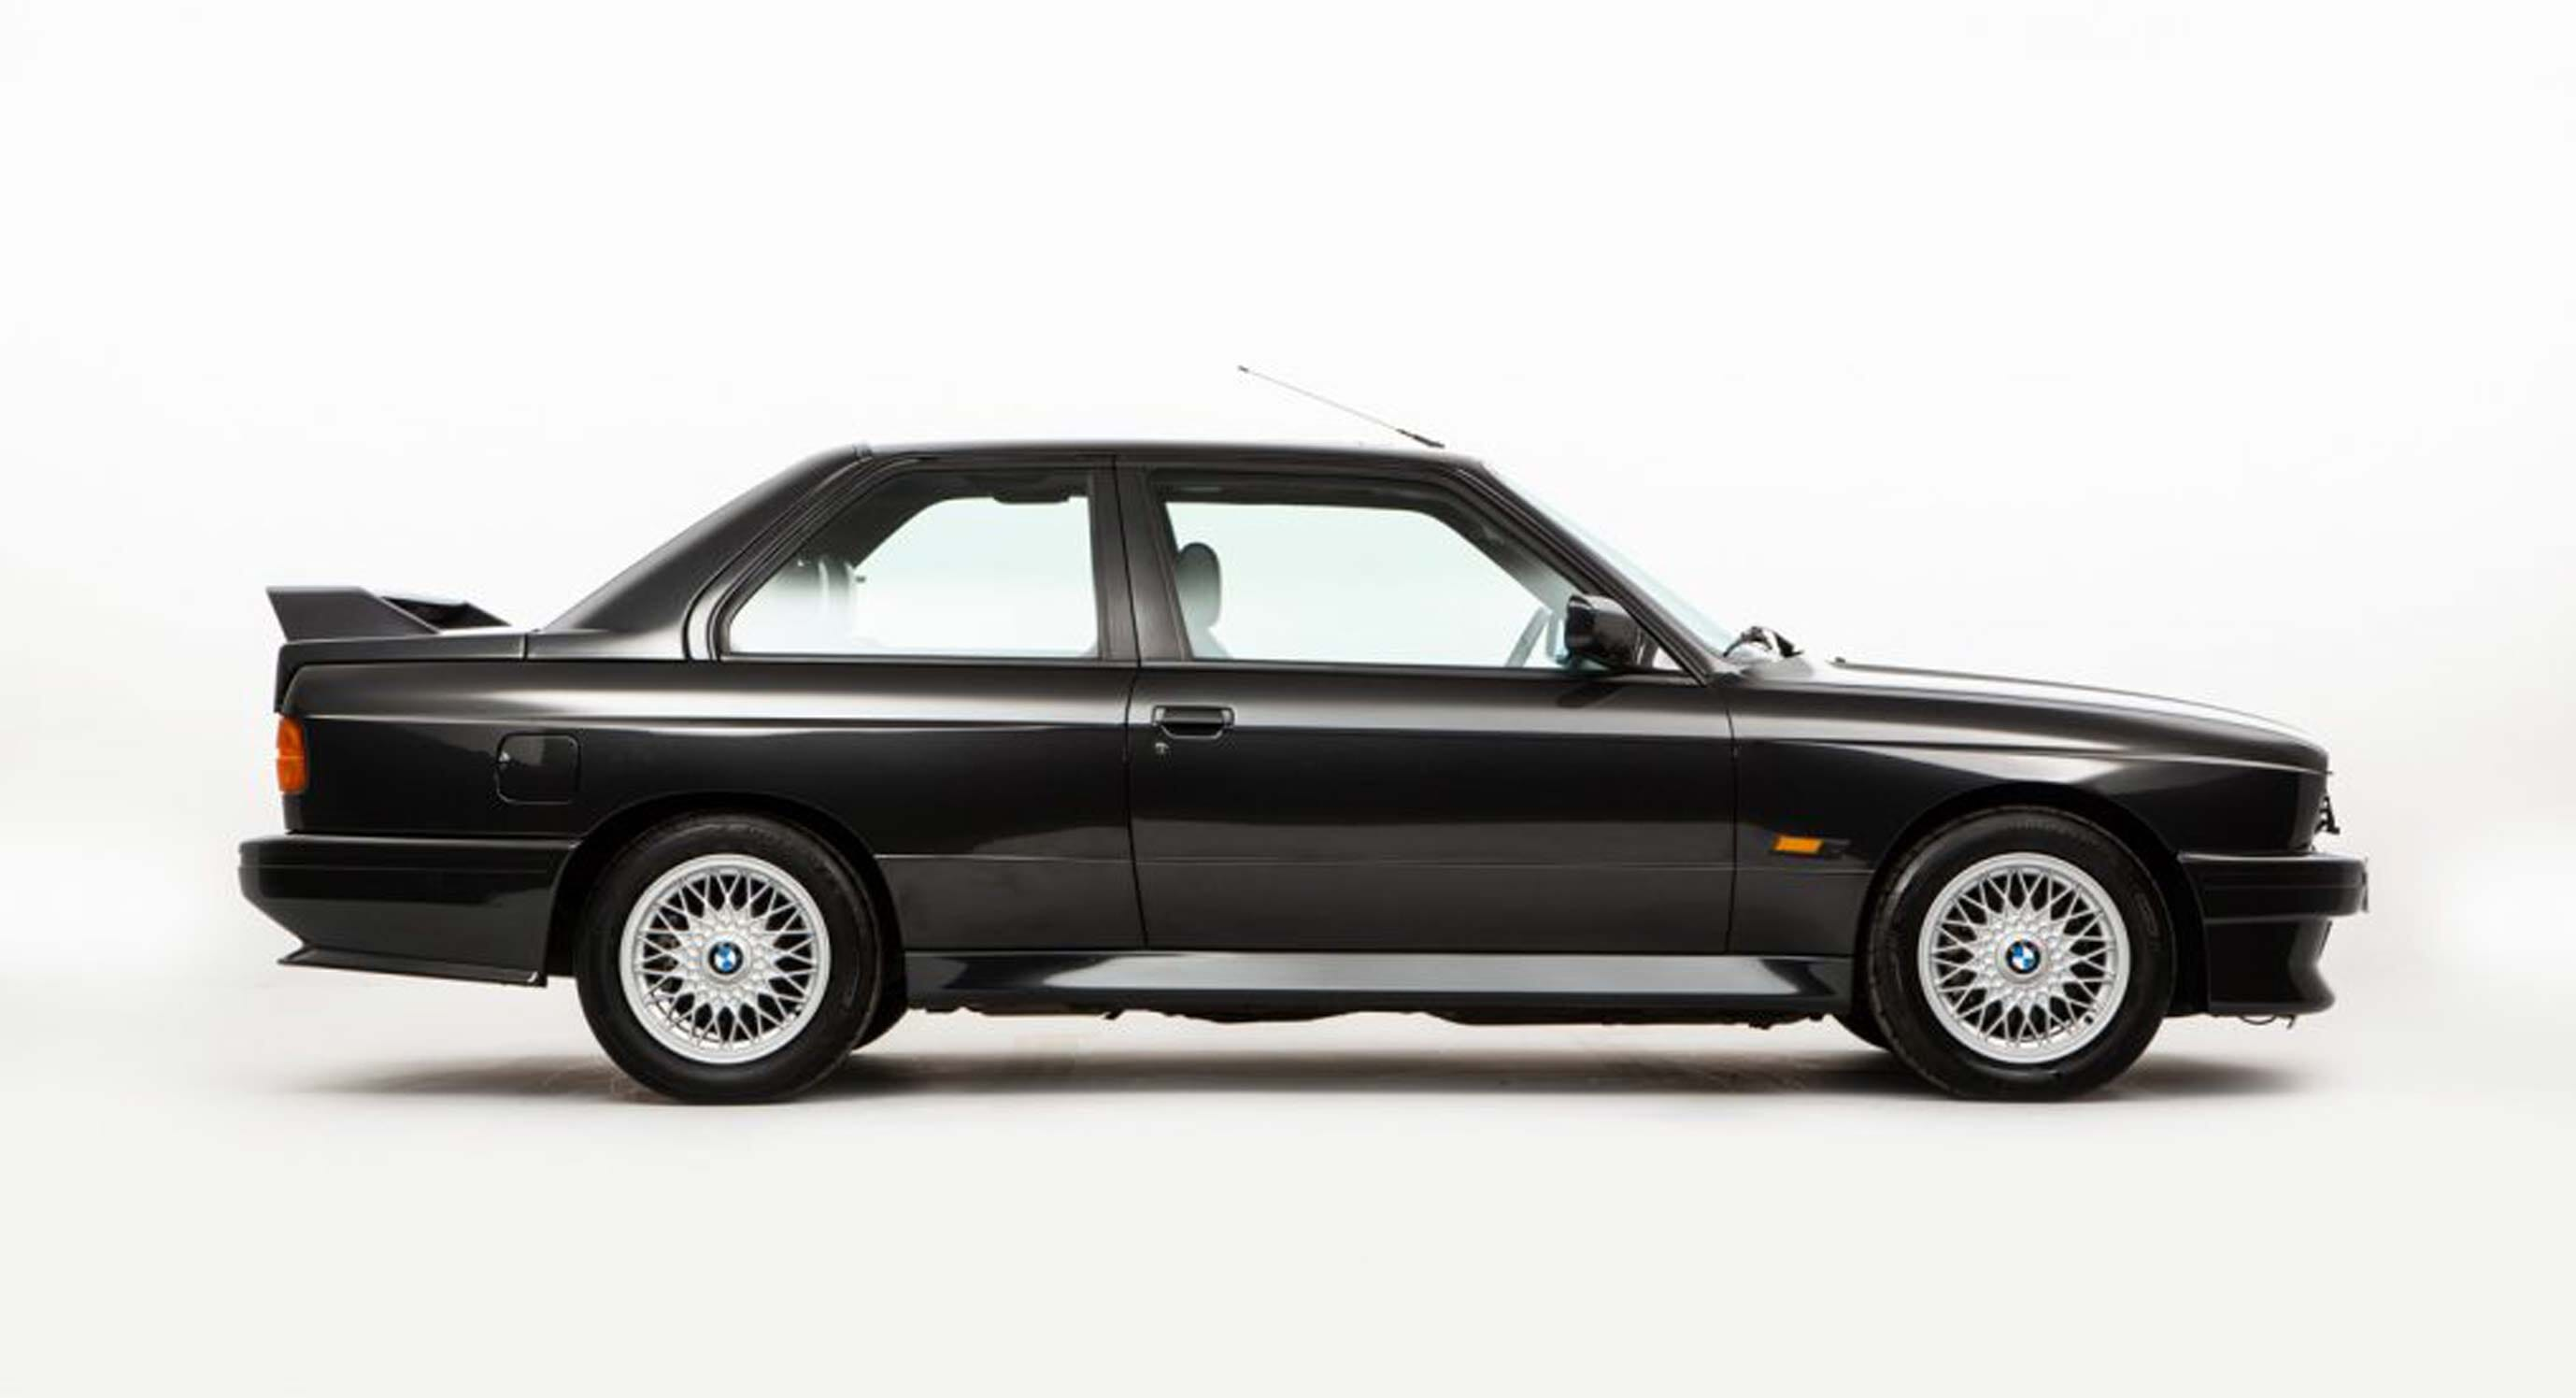 This 1988 BMW E30 M3 Is A Blast From The Past